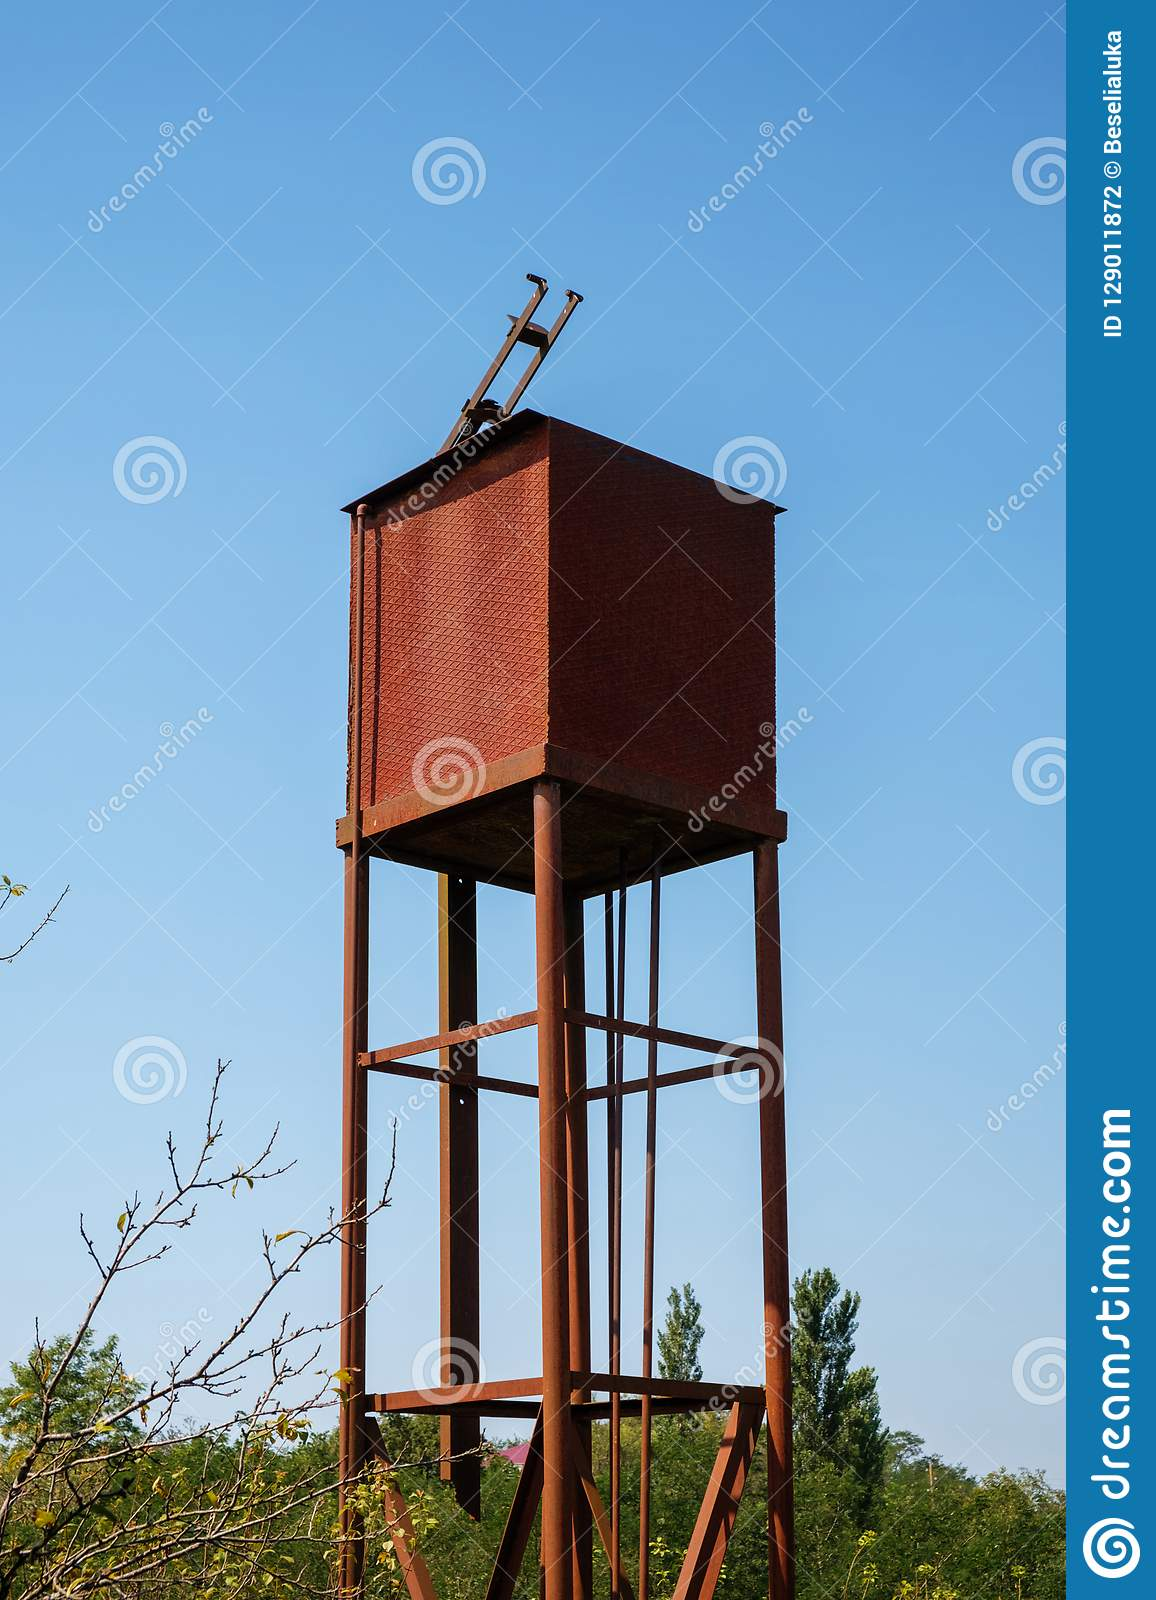 Water tank stock photo  Image of reserve, tall, reservoir - 129011872